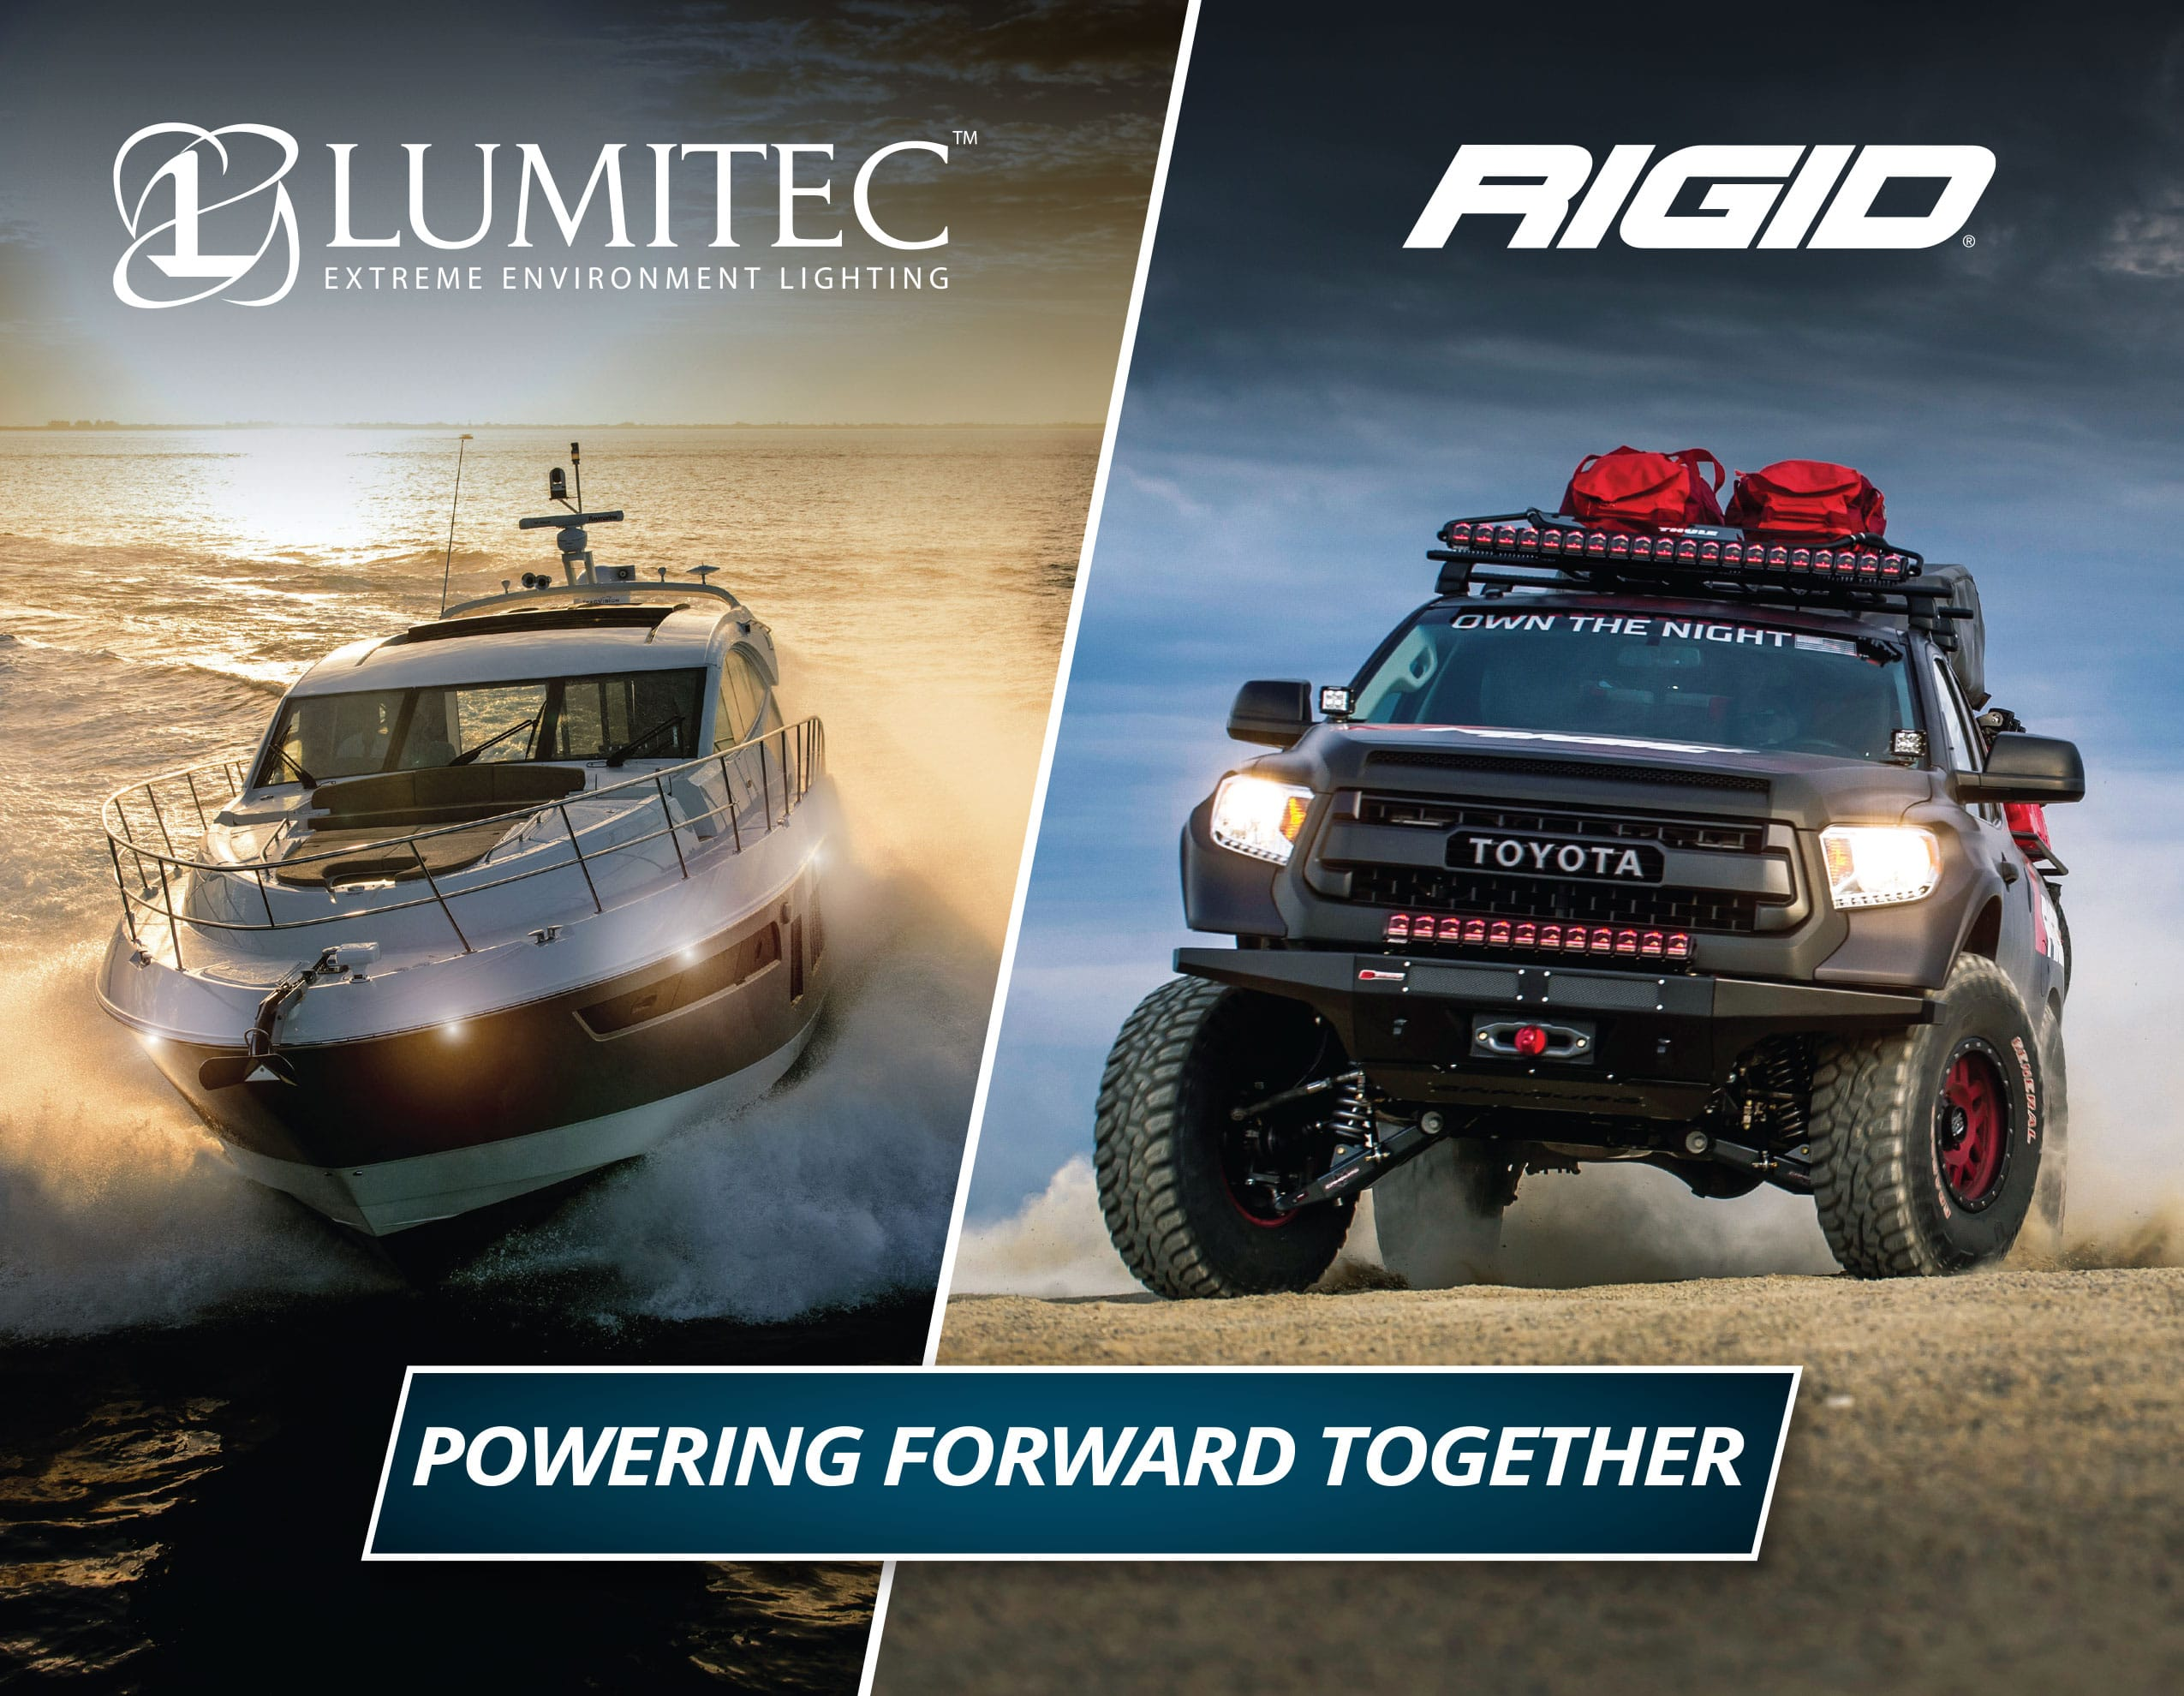 A New Partnership in Extreme Lighting